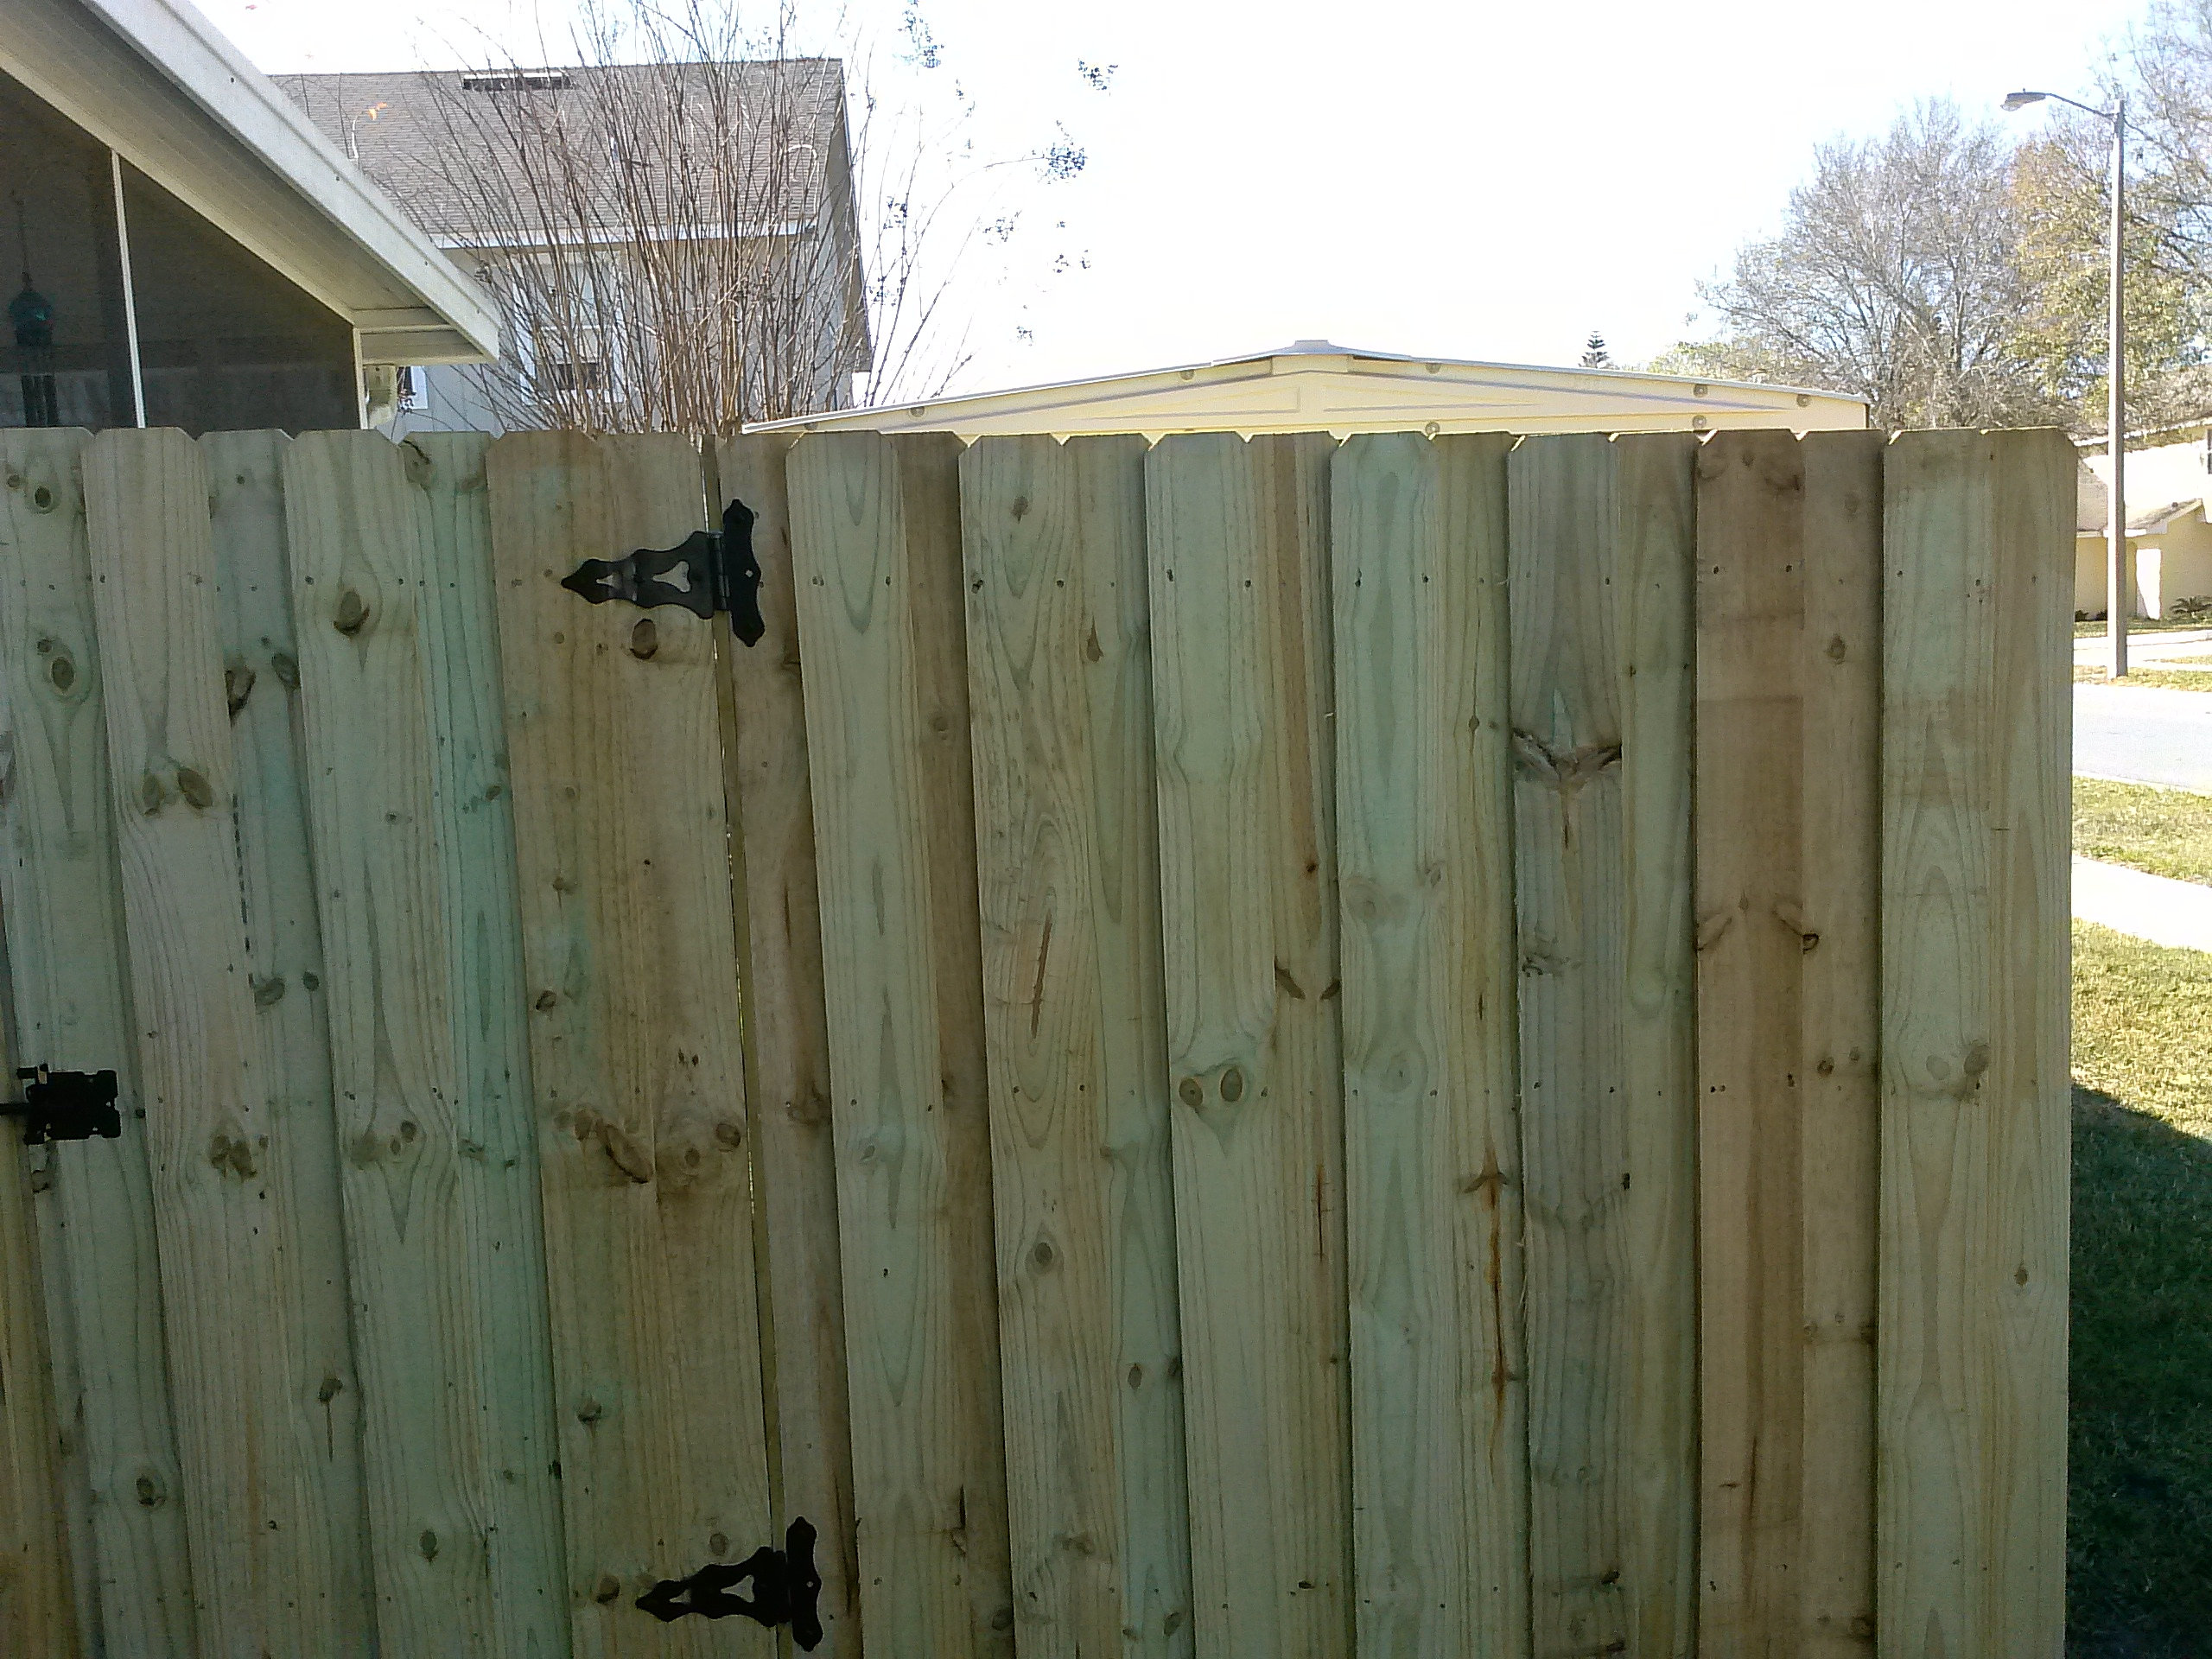 Vinyl Fence Aluminum Fence Chain Link Fence And Wood